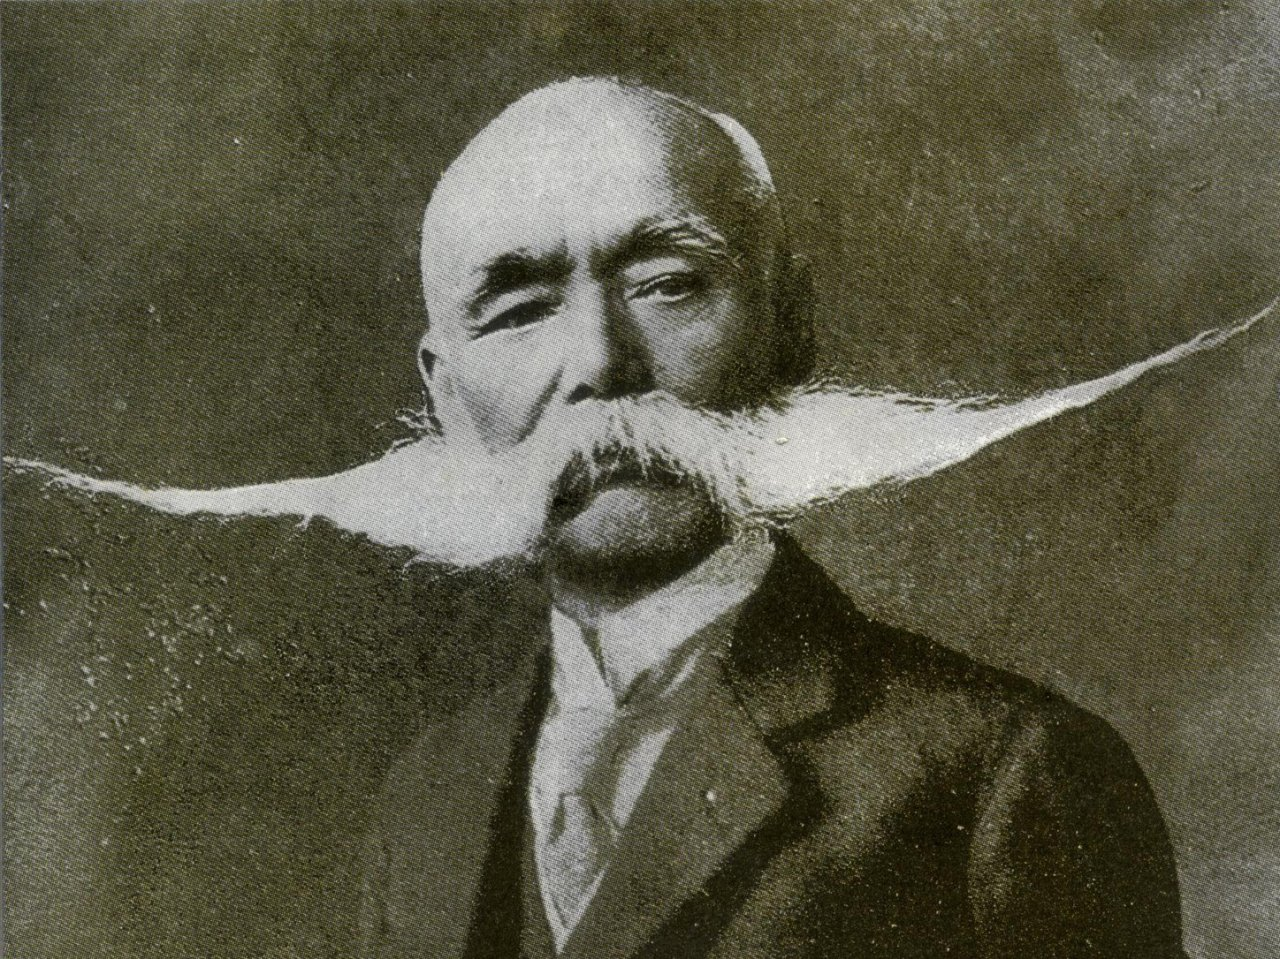 Man with an incredibly wide mustache